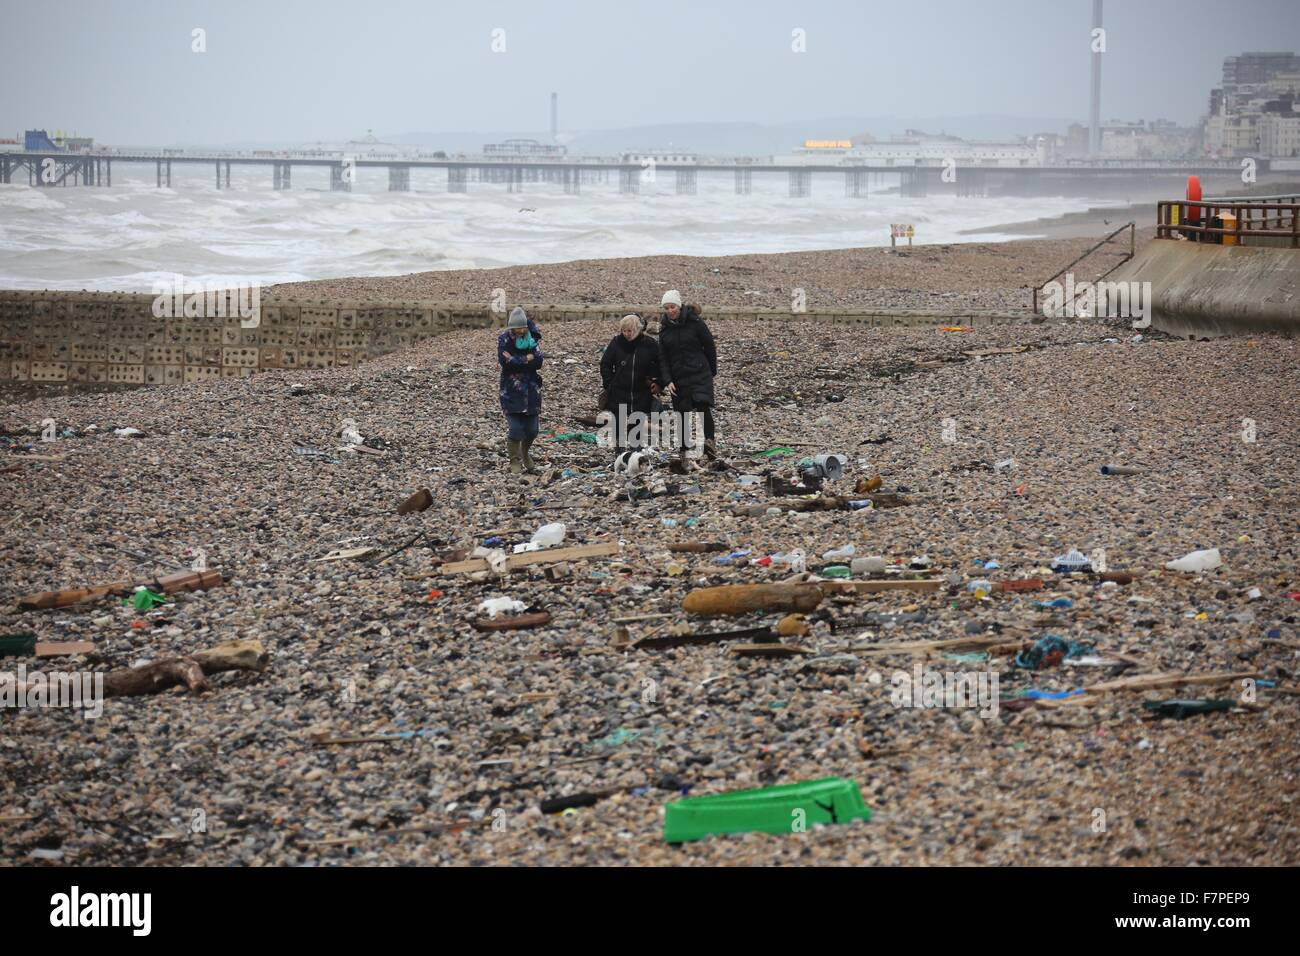 Three women walk amongst litter washed ashore on Brighton Beach 2 December 2015 after high winds and seas continue - Stock Image